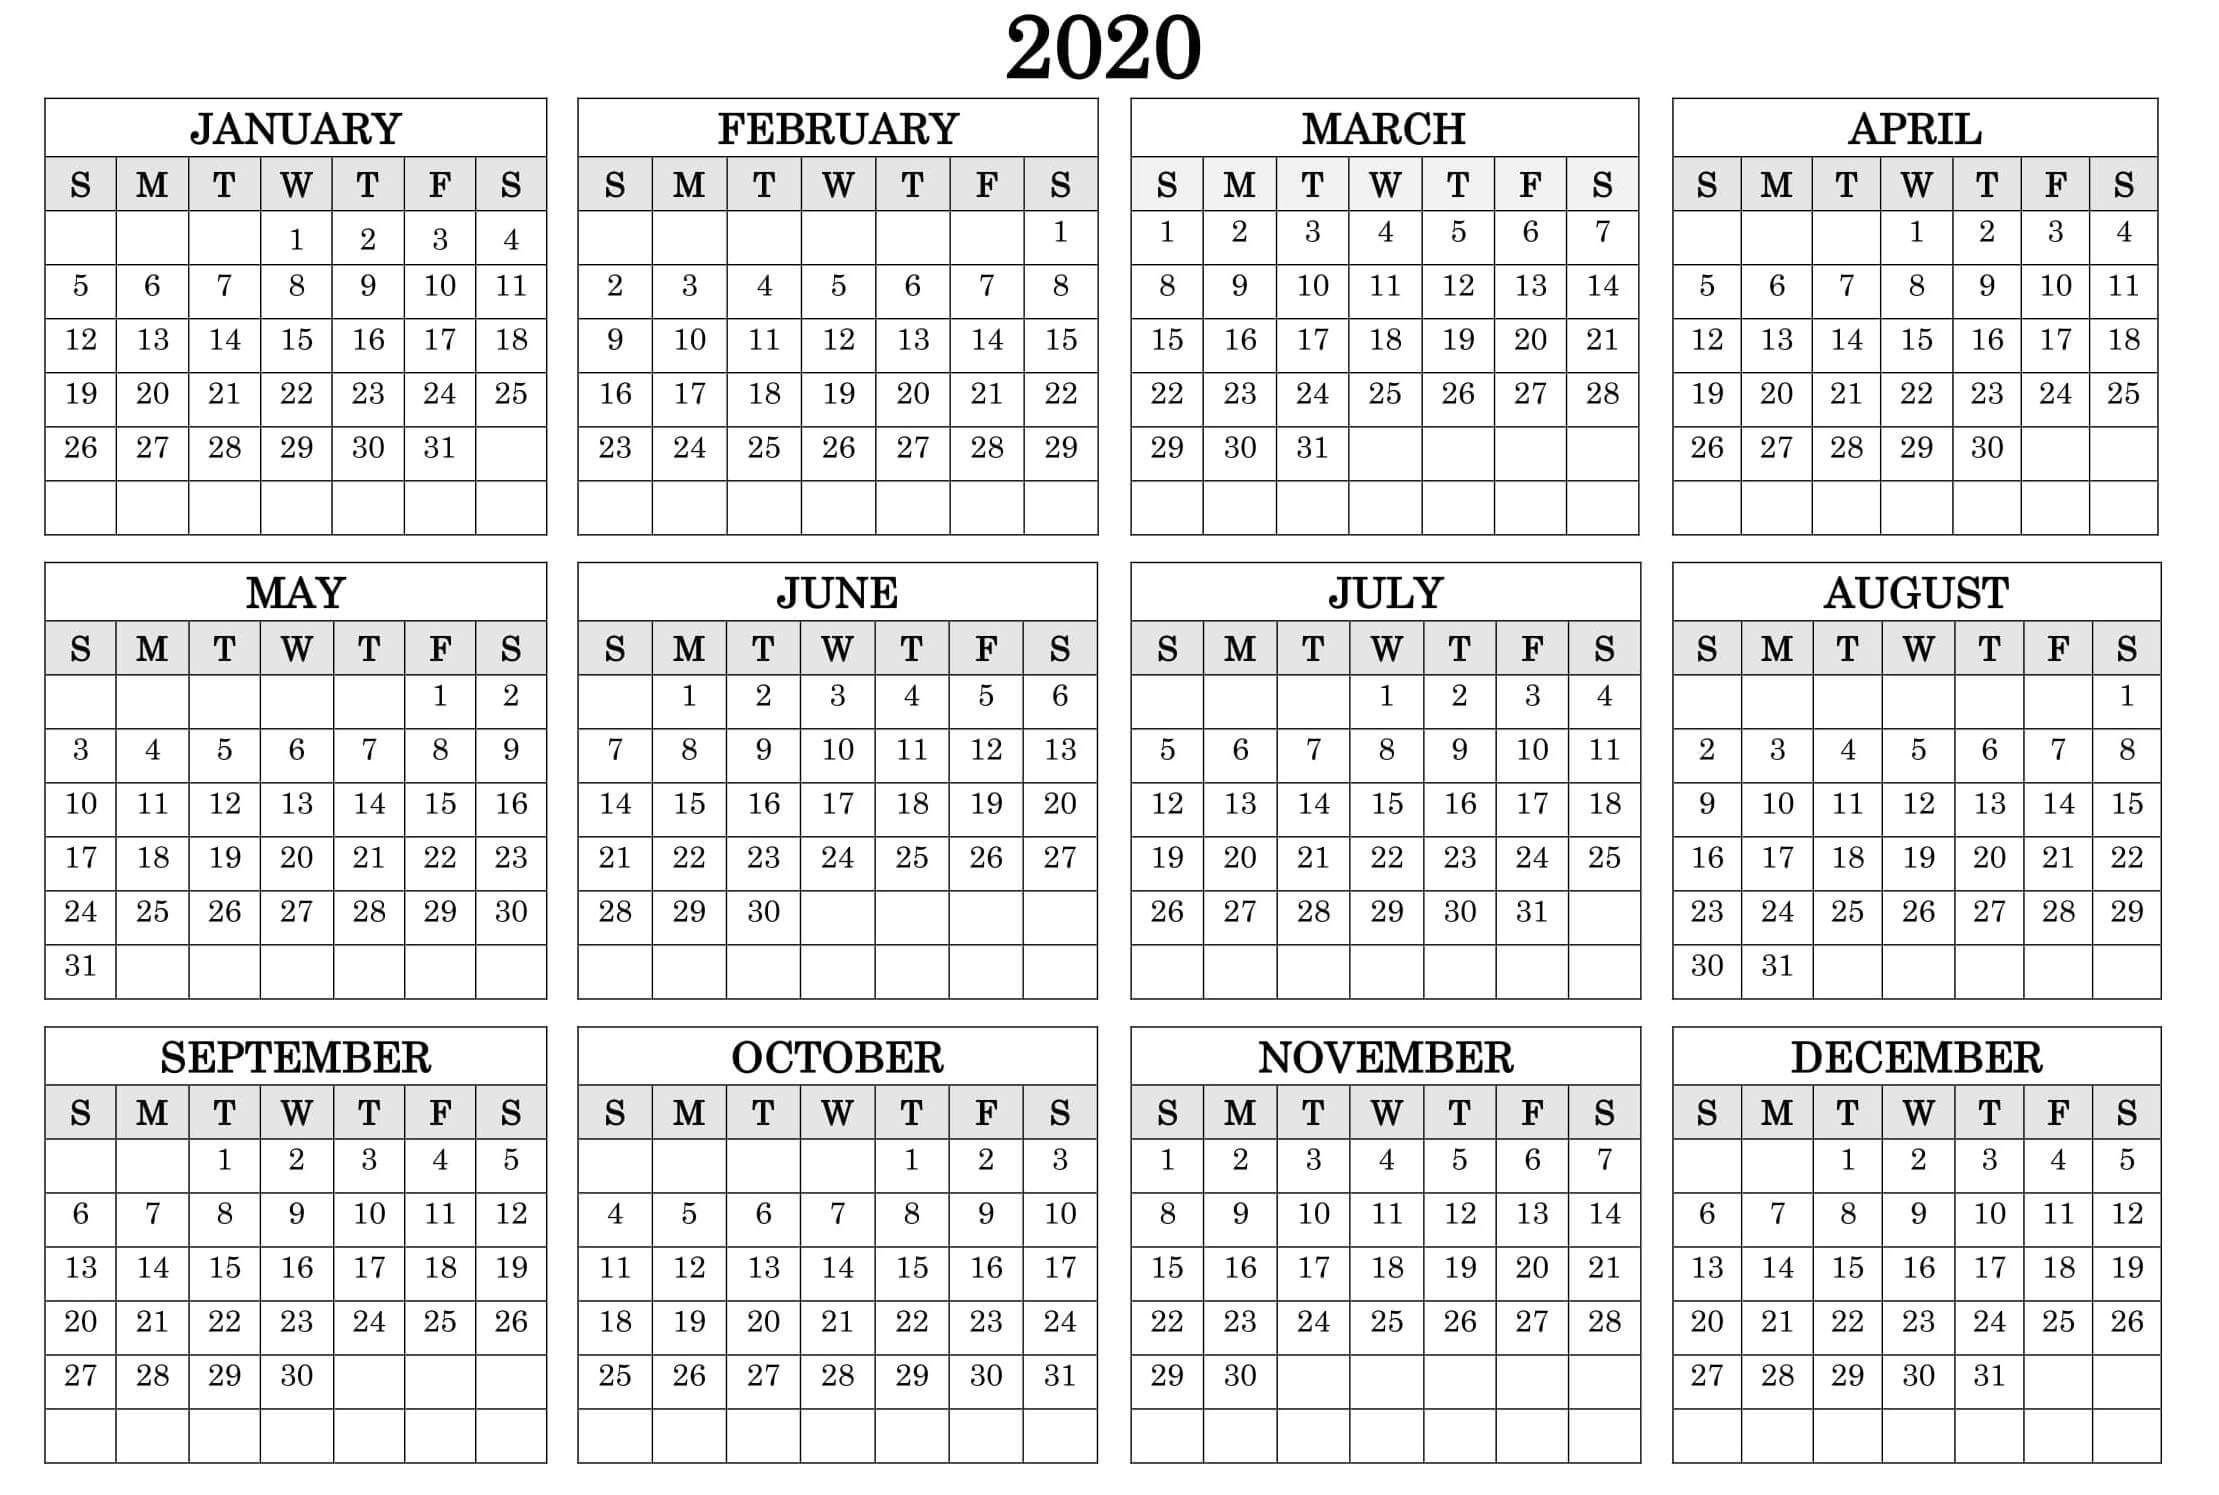 Printable Calendar Year 2020 Holidays Fillable Pdf - Set regarding Printable Fillable 2020 Calandars Monthly At A Glance